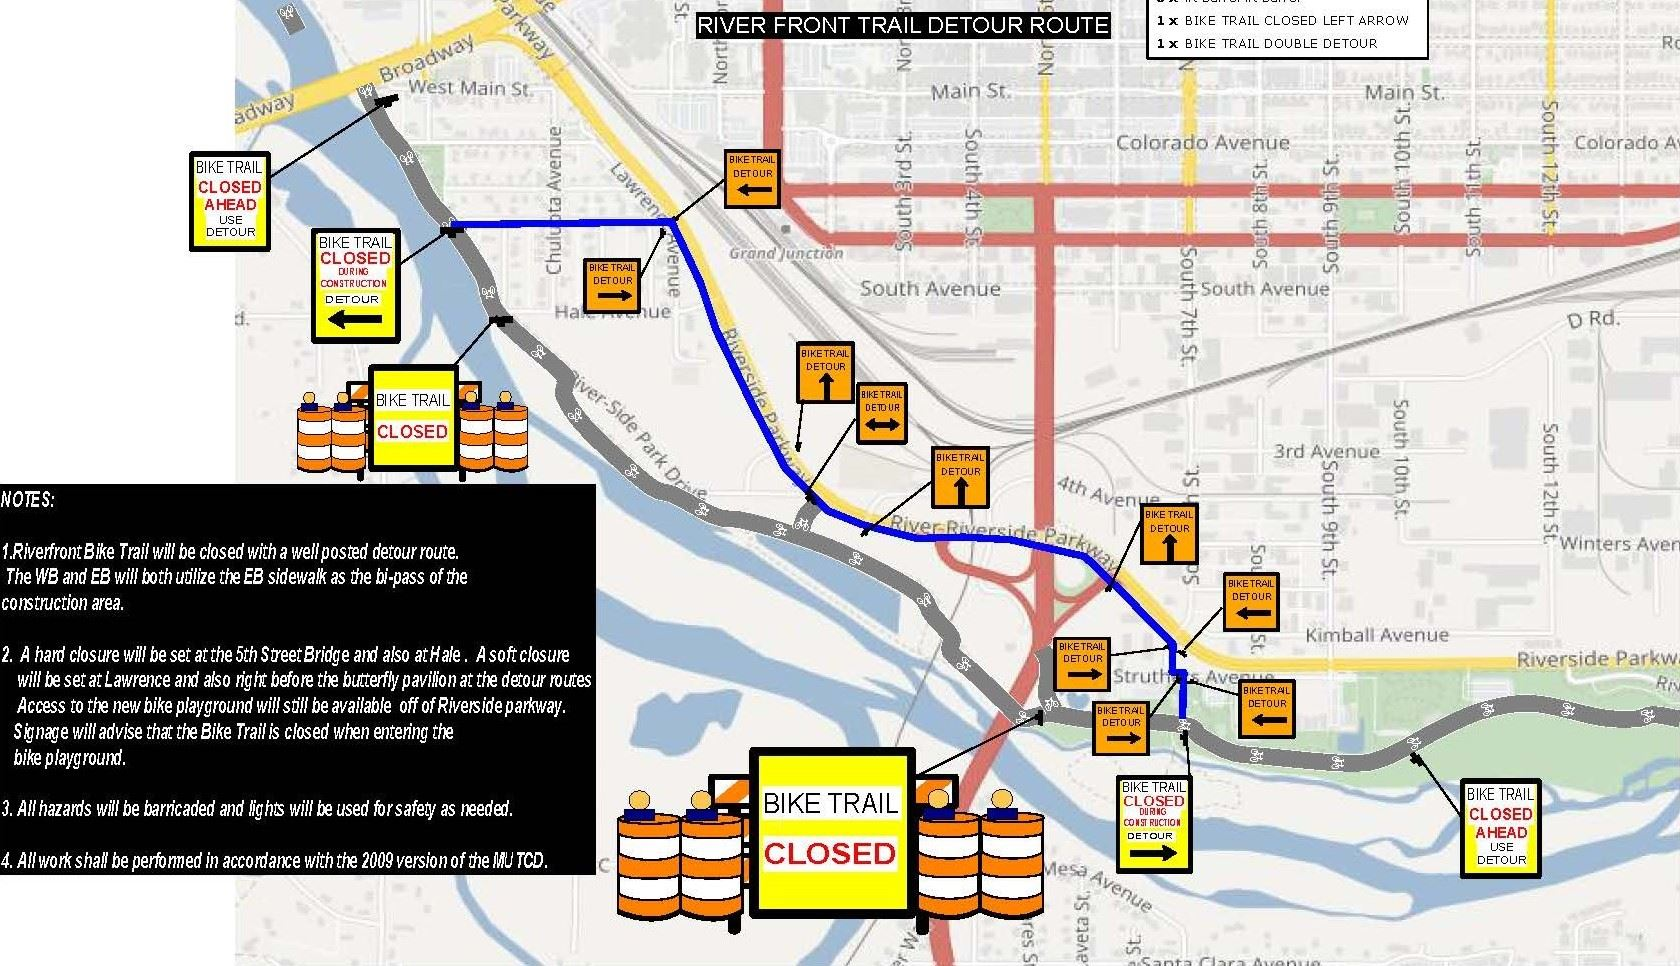 River Front Trail Detour Map